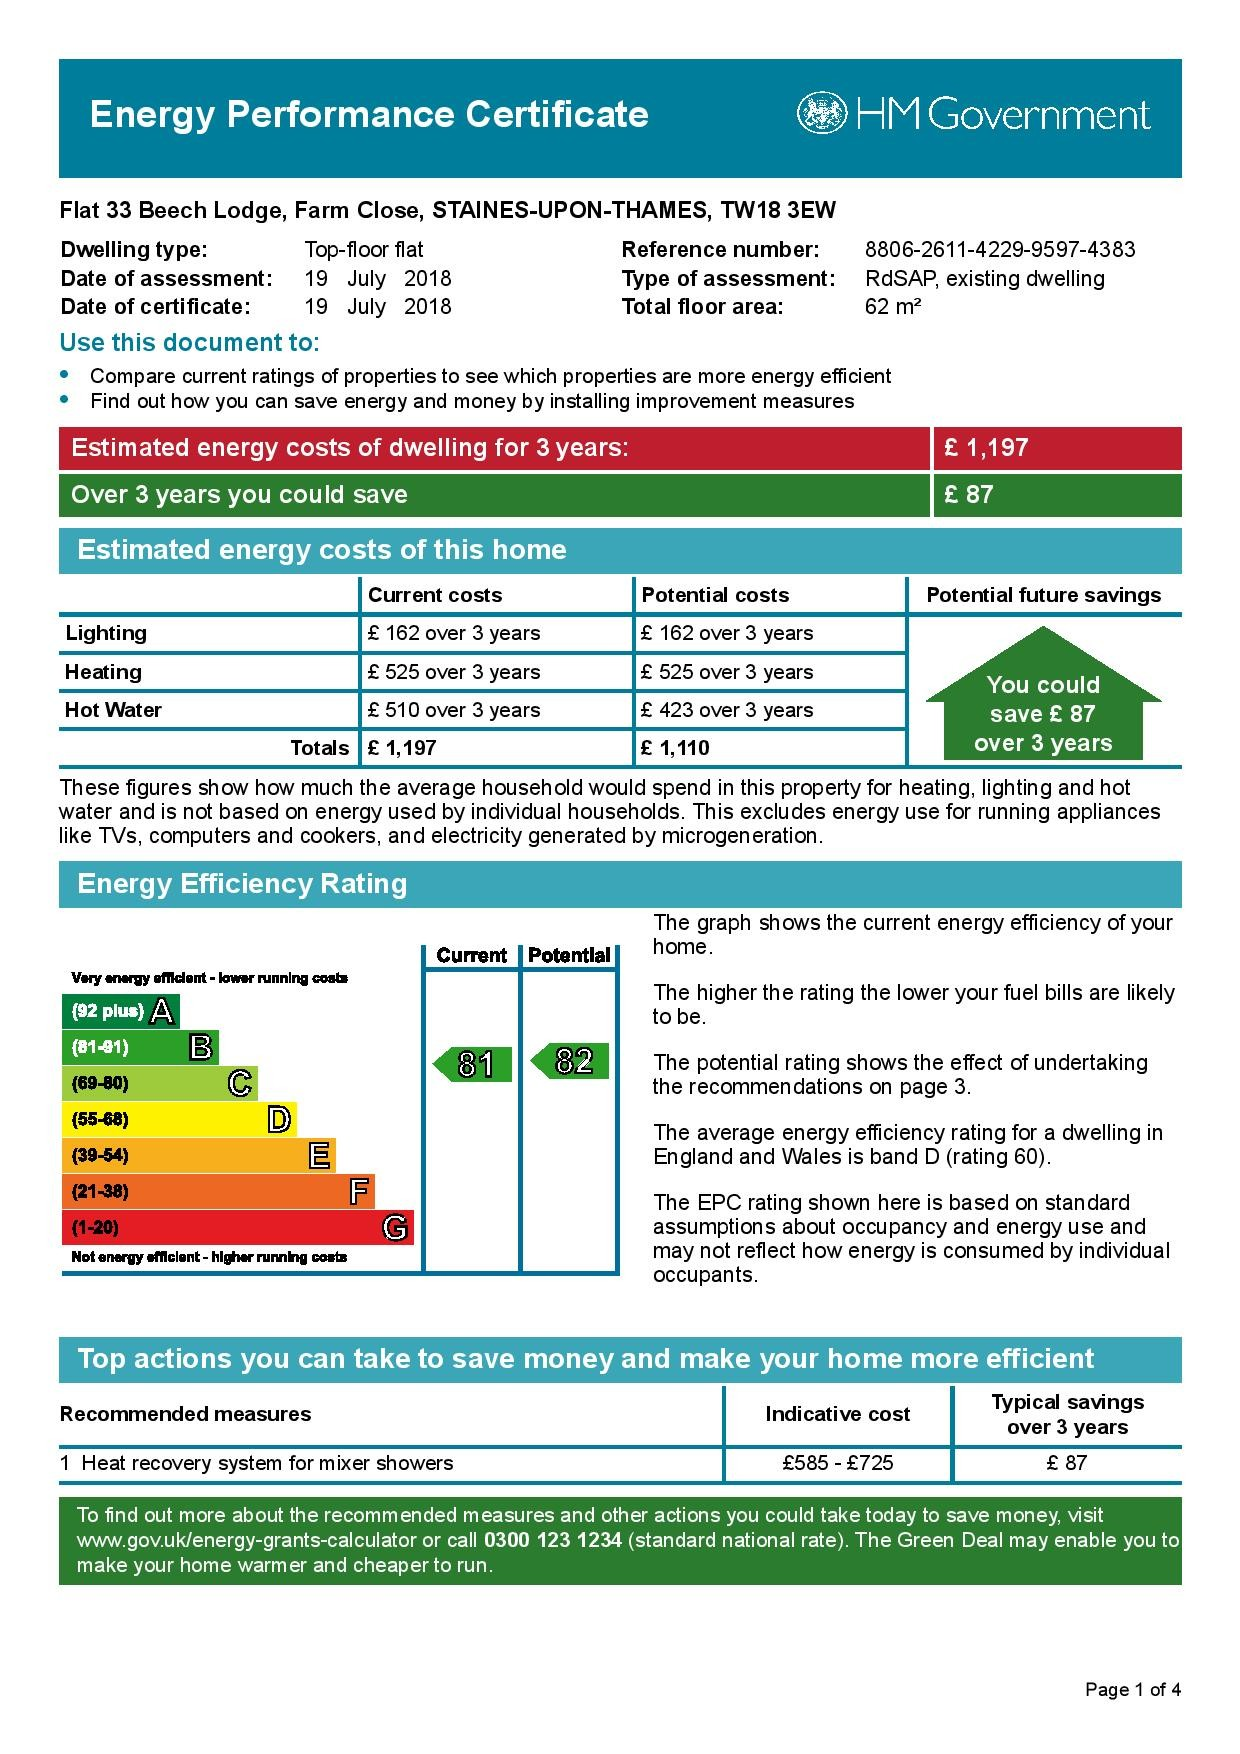 EPC Graph for 33 Beech Lodge, Farm Close, Staines-Upon-Thames, Middlesex TW18 3EW